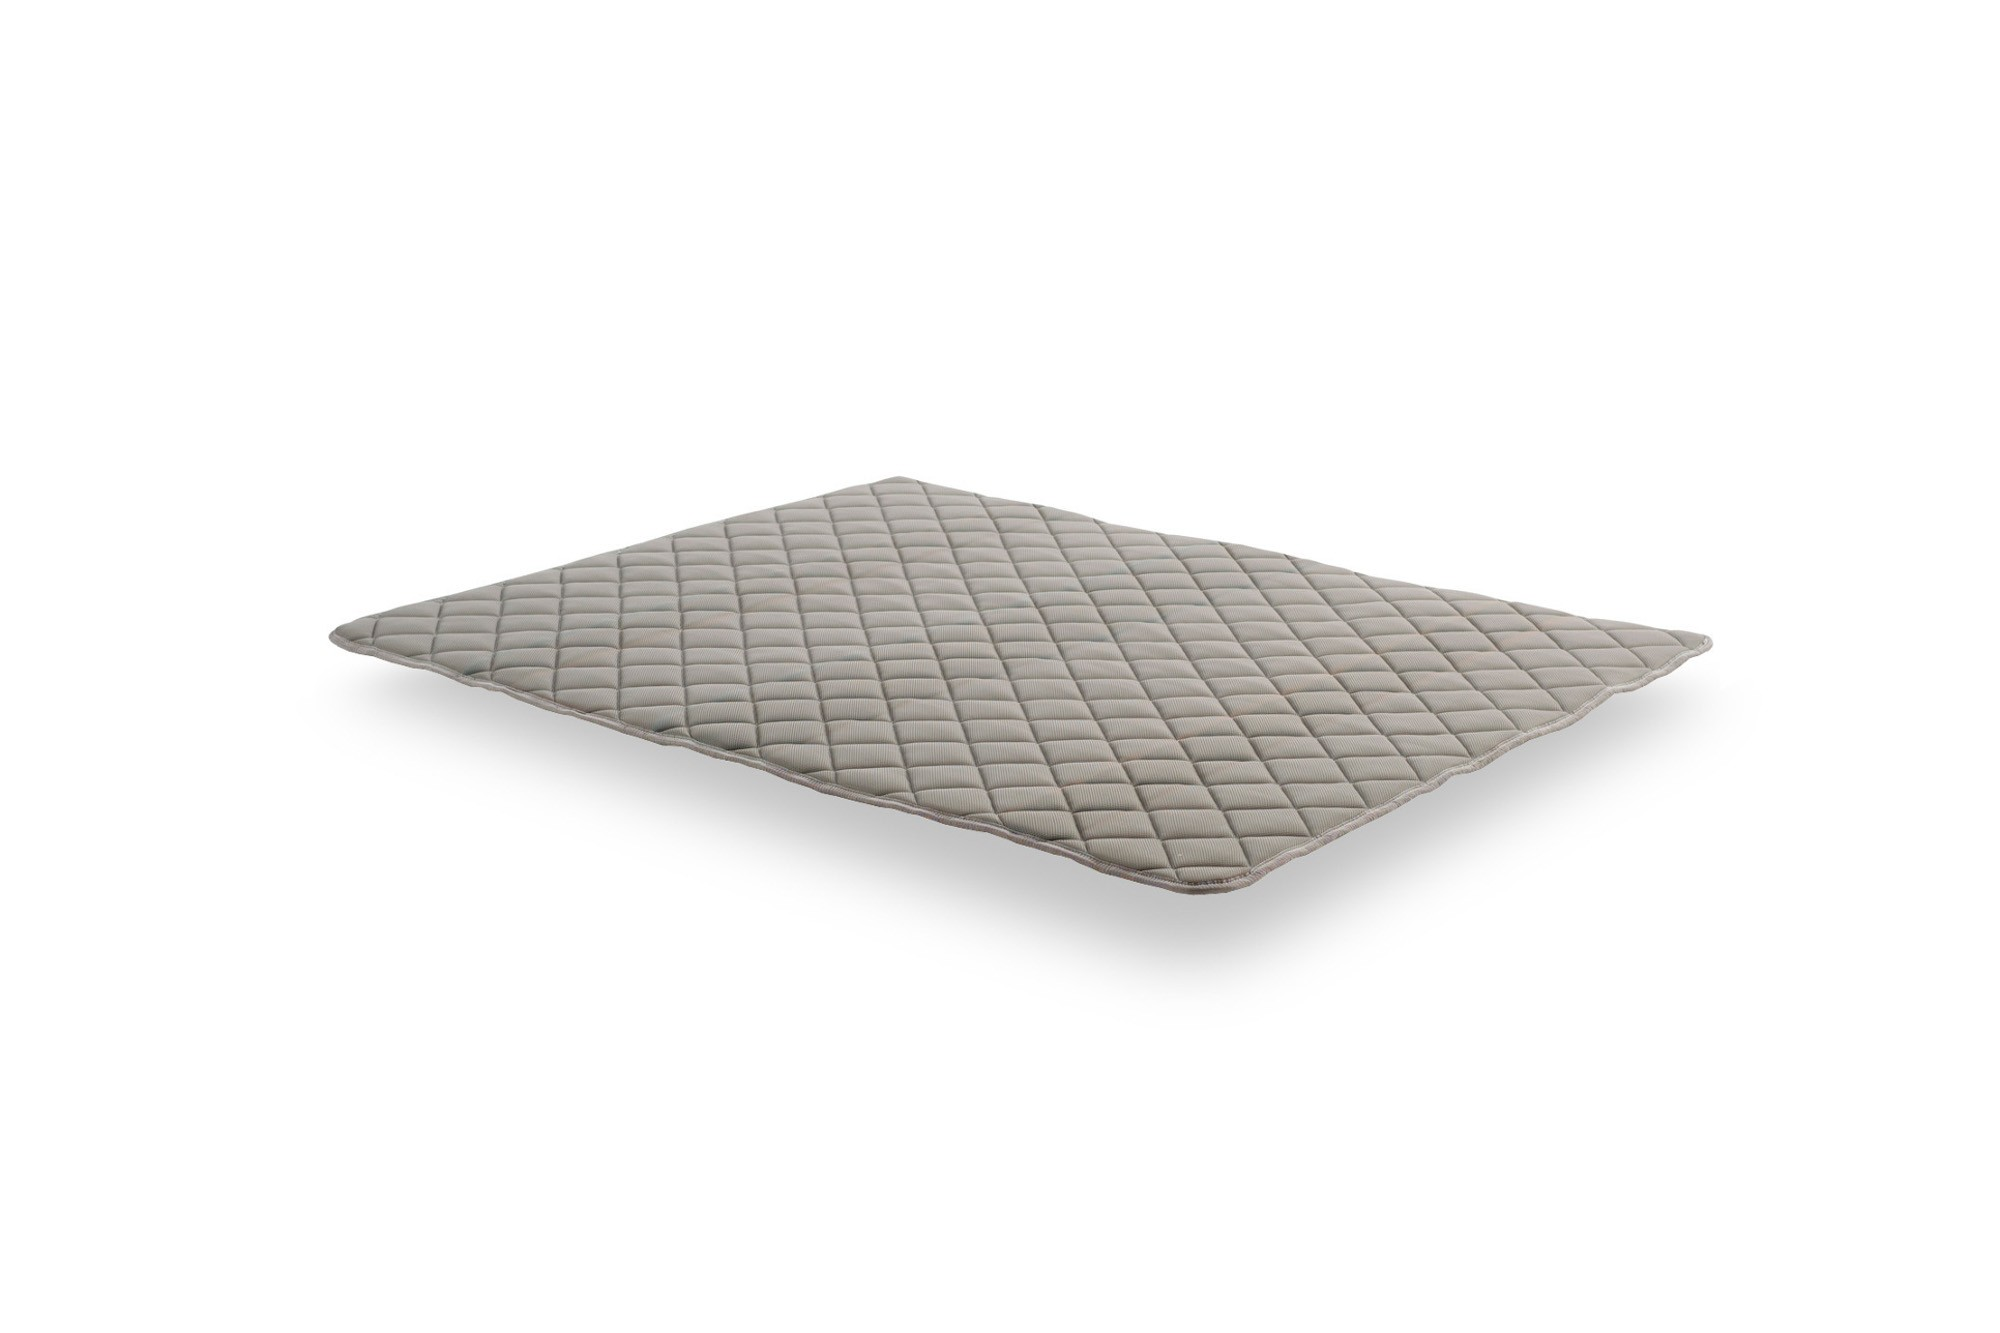 As it is reversible, this mattress topper can be turned regularly in the direction of head/feet and summer/winter for optimal use.